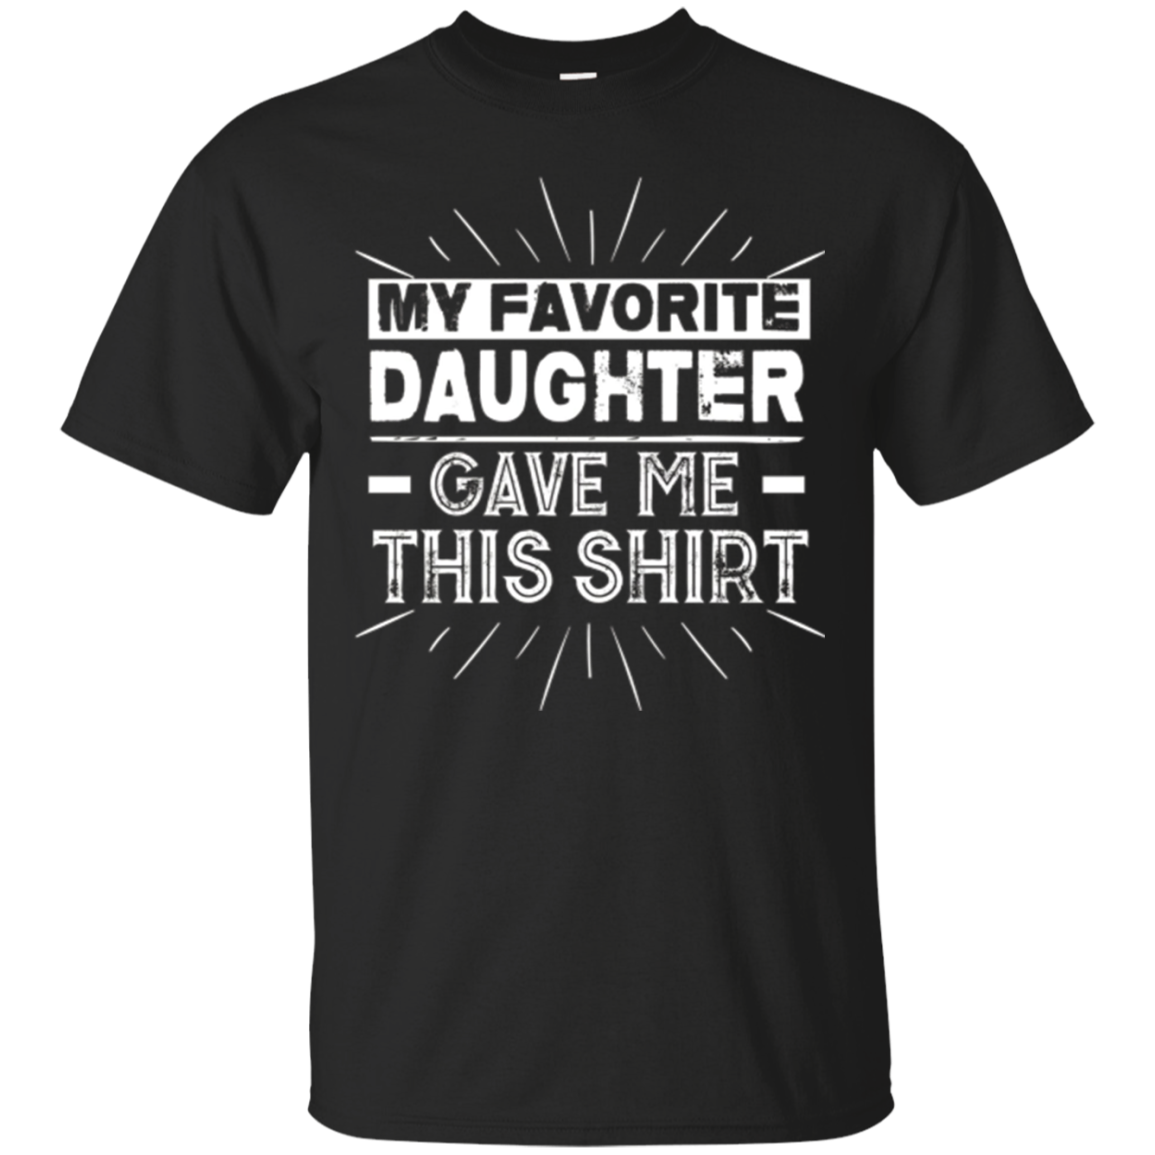 Christmas Gift For Father From Daughter To Dad Funny Fun Tee